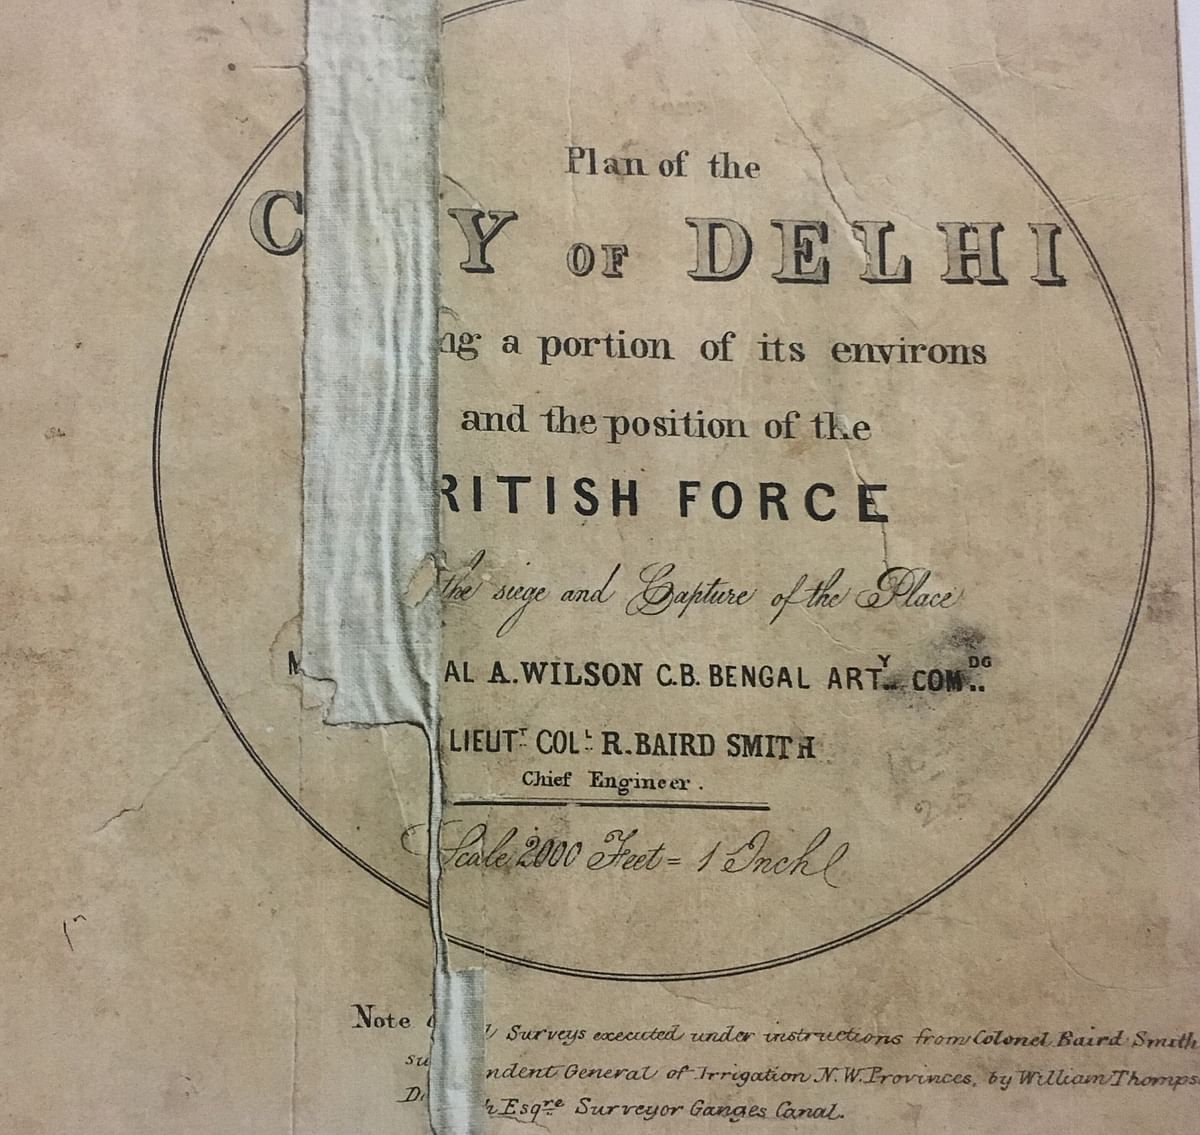 From Plan of City of Delhi, National Archives of India, 1859.